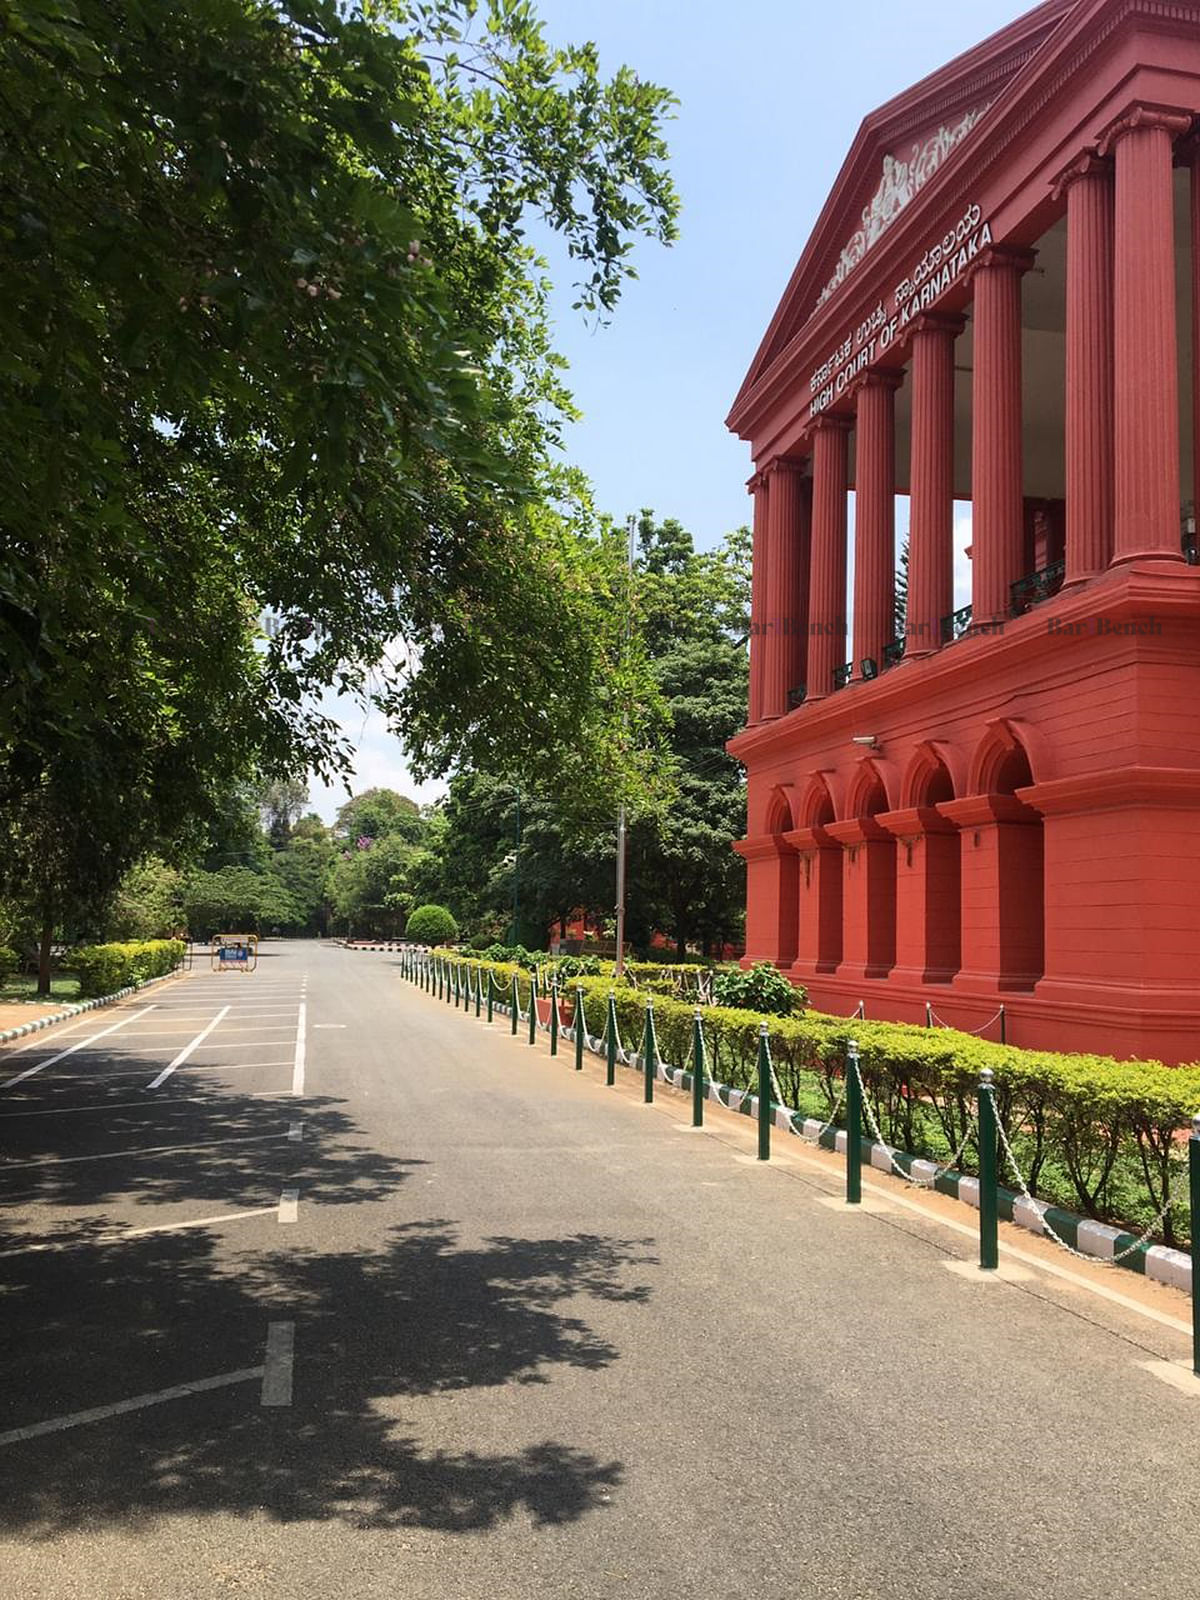 Franklin Templeton debt schemes petitions: Karnataka HC to fix schedule for hearing cases on August 7